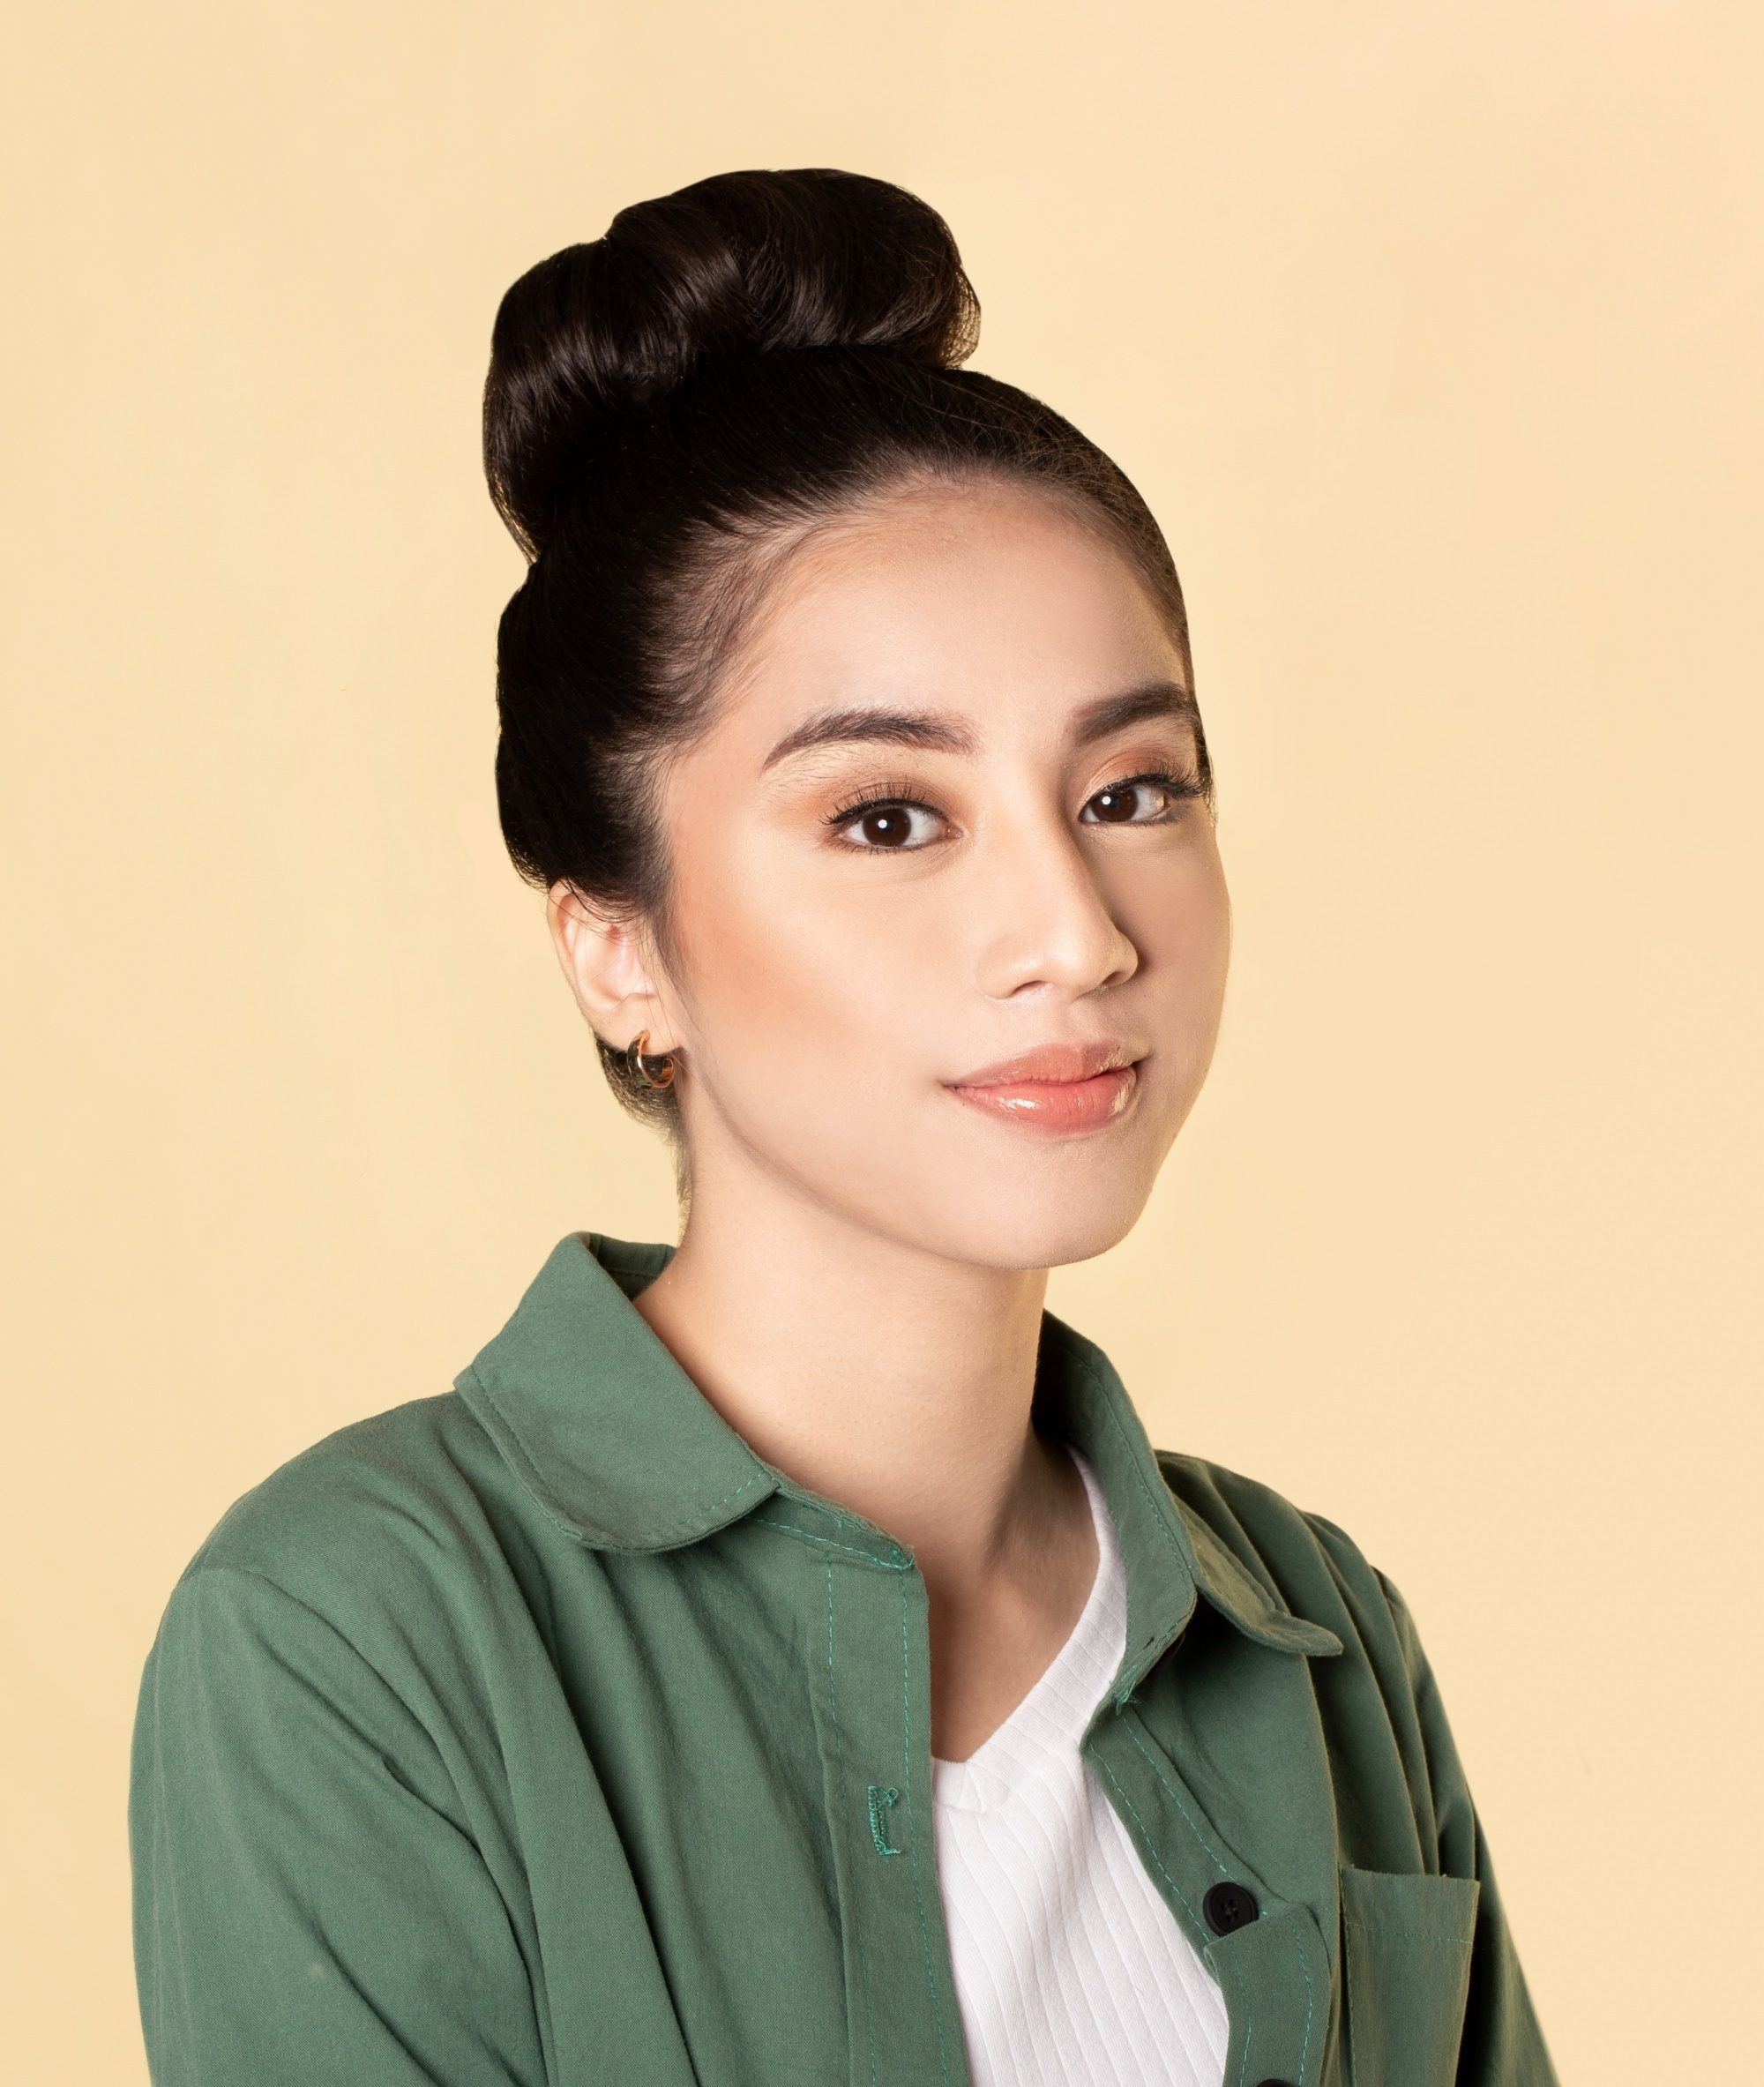 Asian woman with long black hair in a big top knot hairstyle